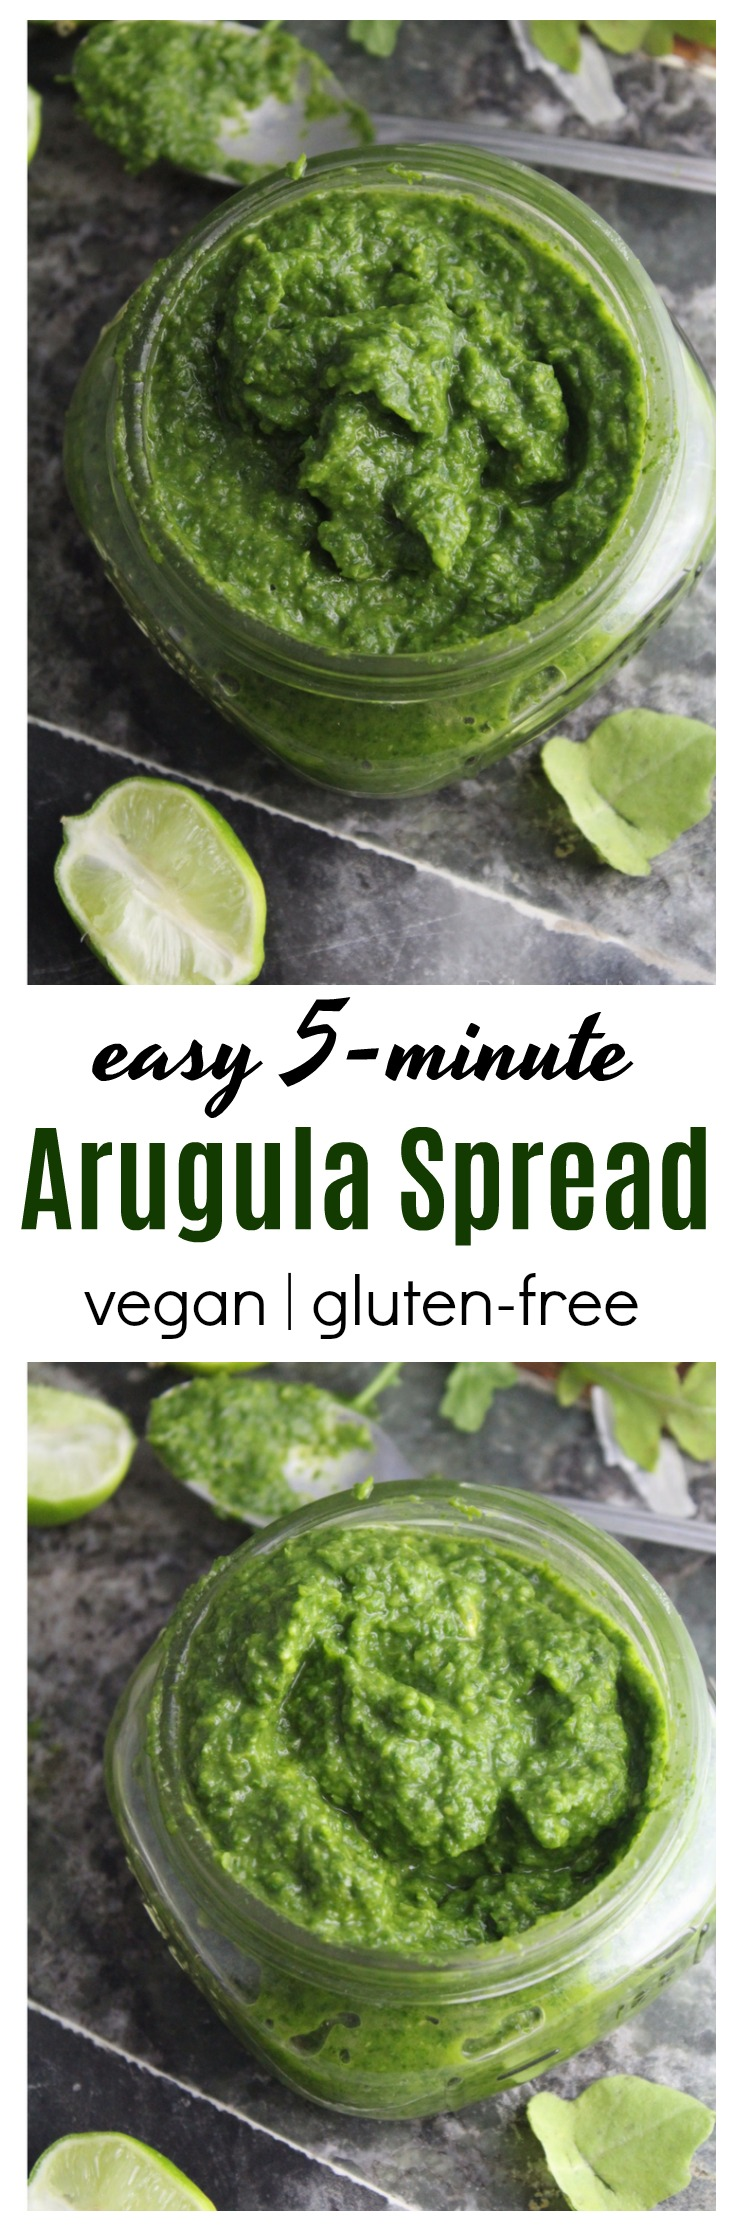 Avocado and cilantro balance out this peppery arugula making an excellent spread that's wonderful on sandwiches or stirred into pasta sauce!  #vegan #glutenfree